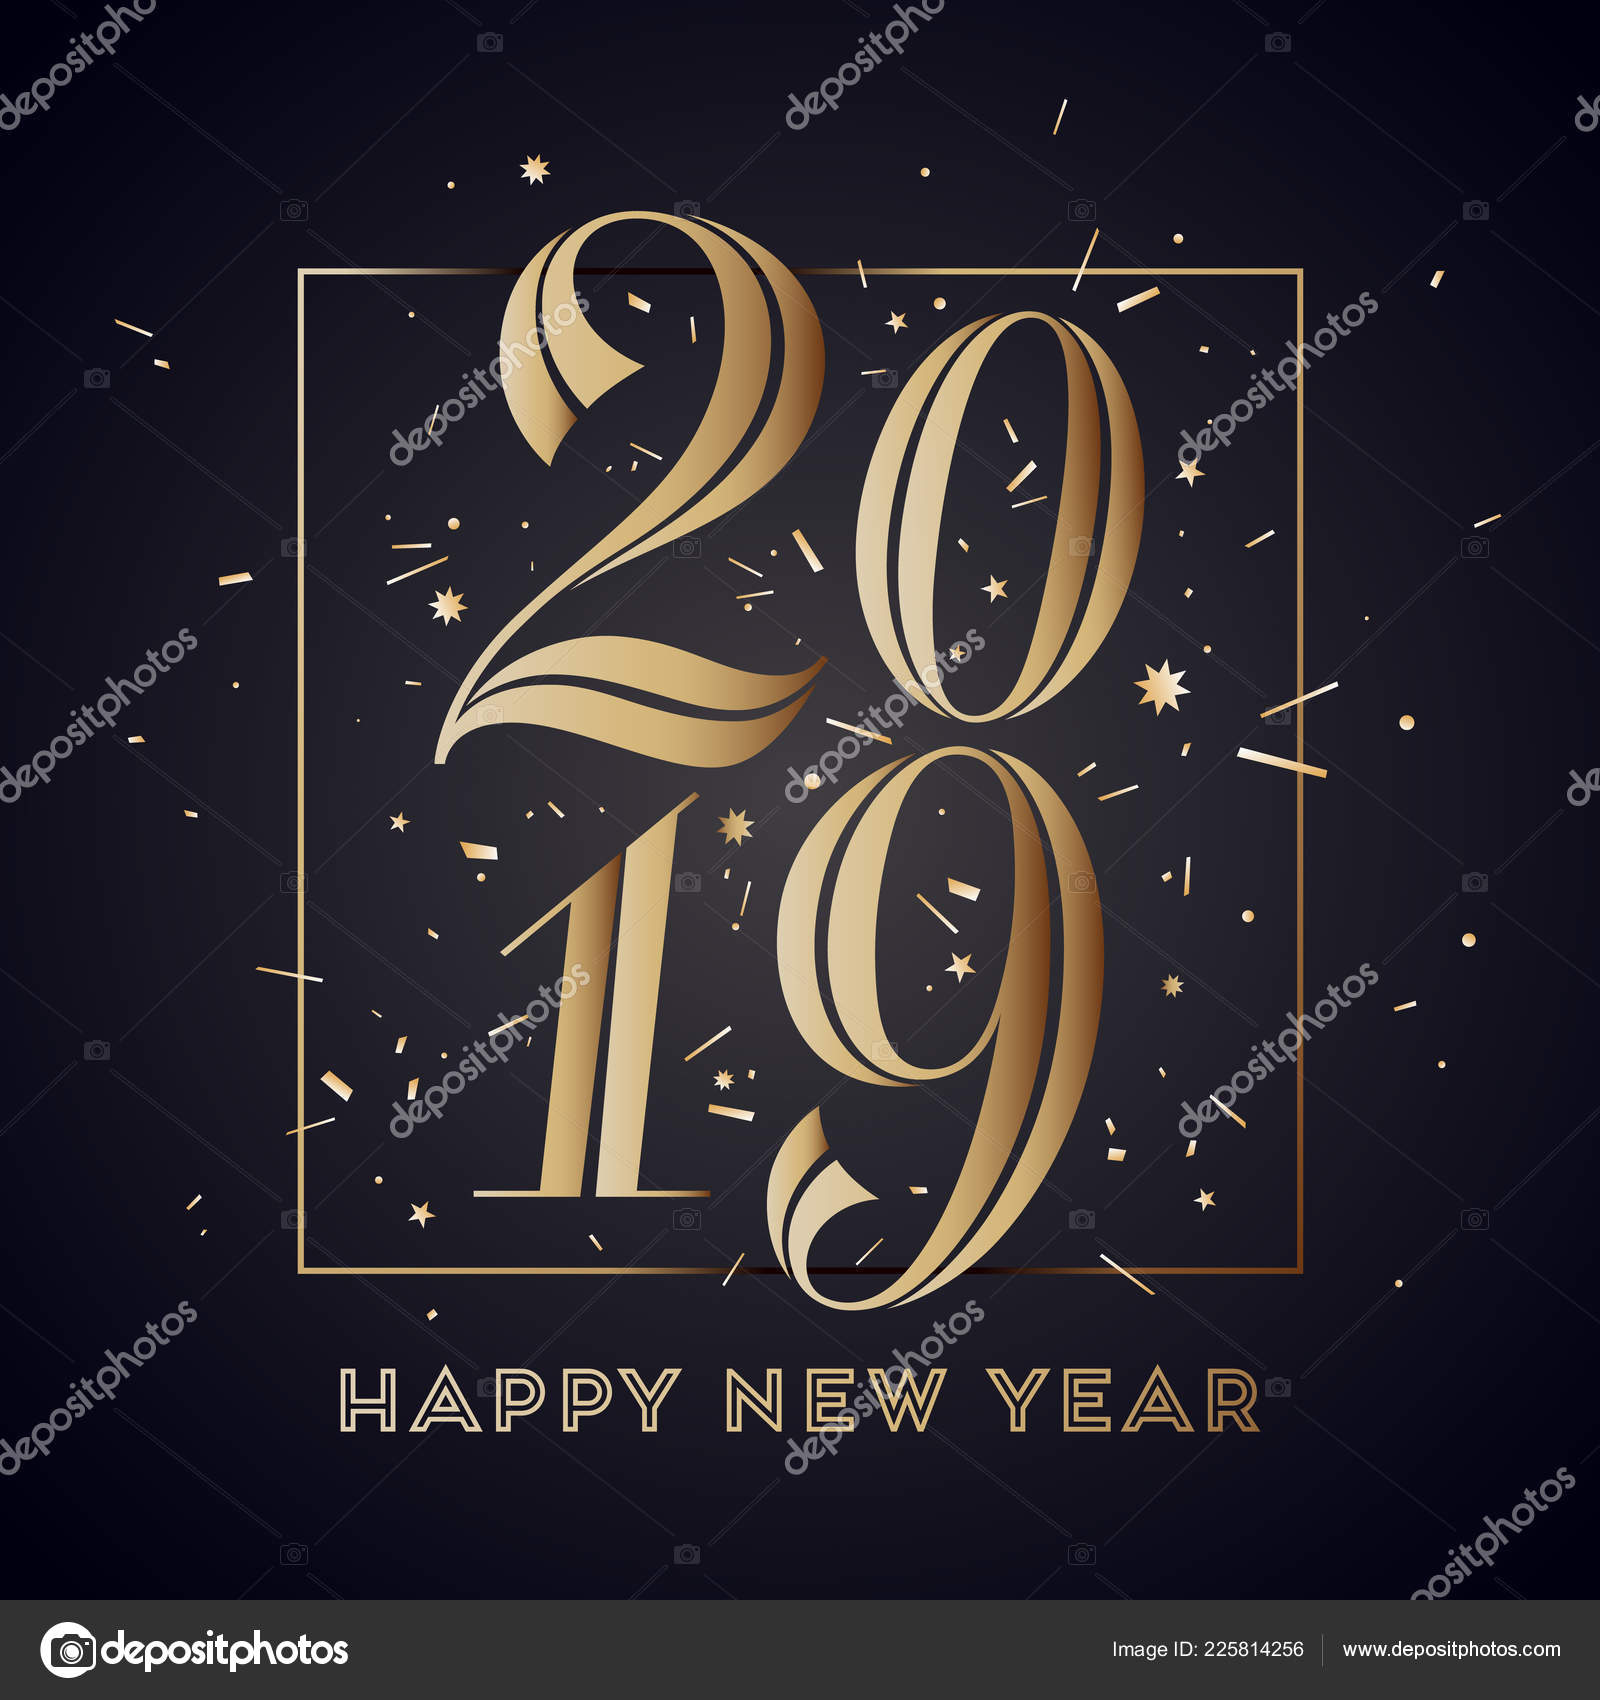 happy new year greeting card with inscription happy new year 2019 fashion style for happy new year or merry christmas theme holiday background banner